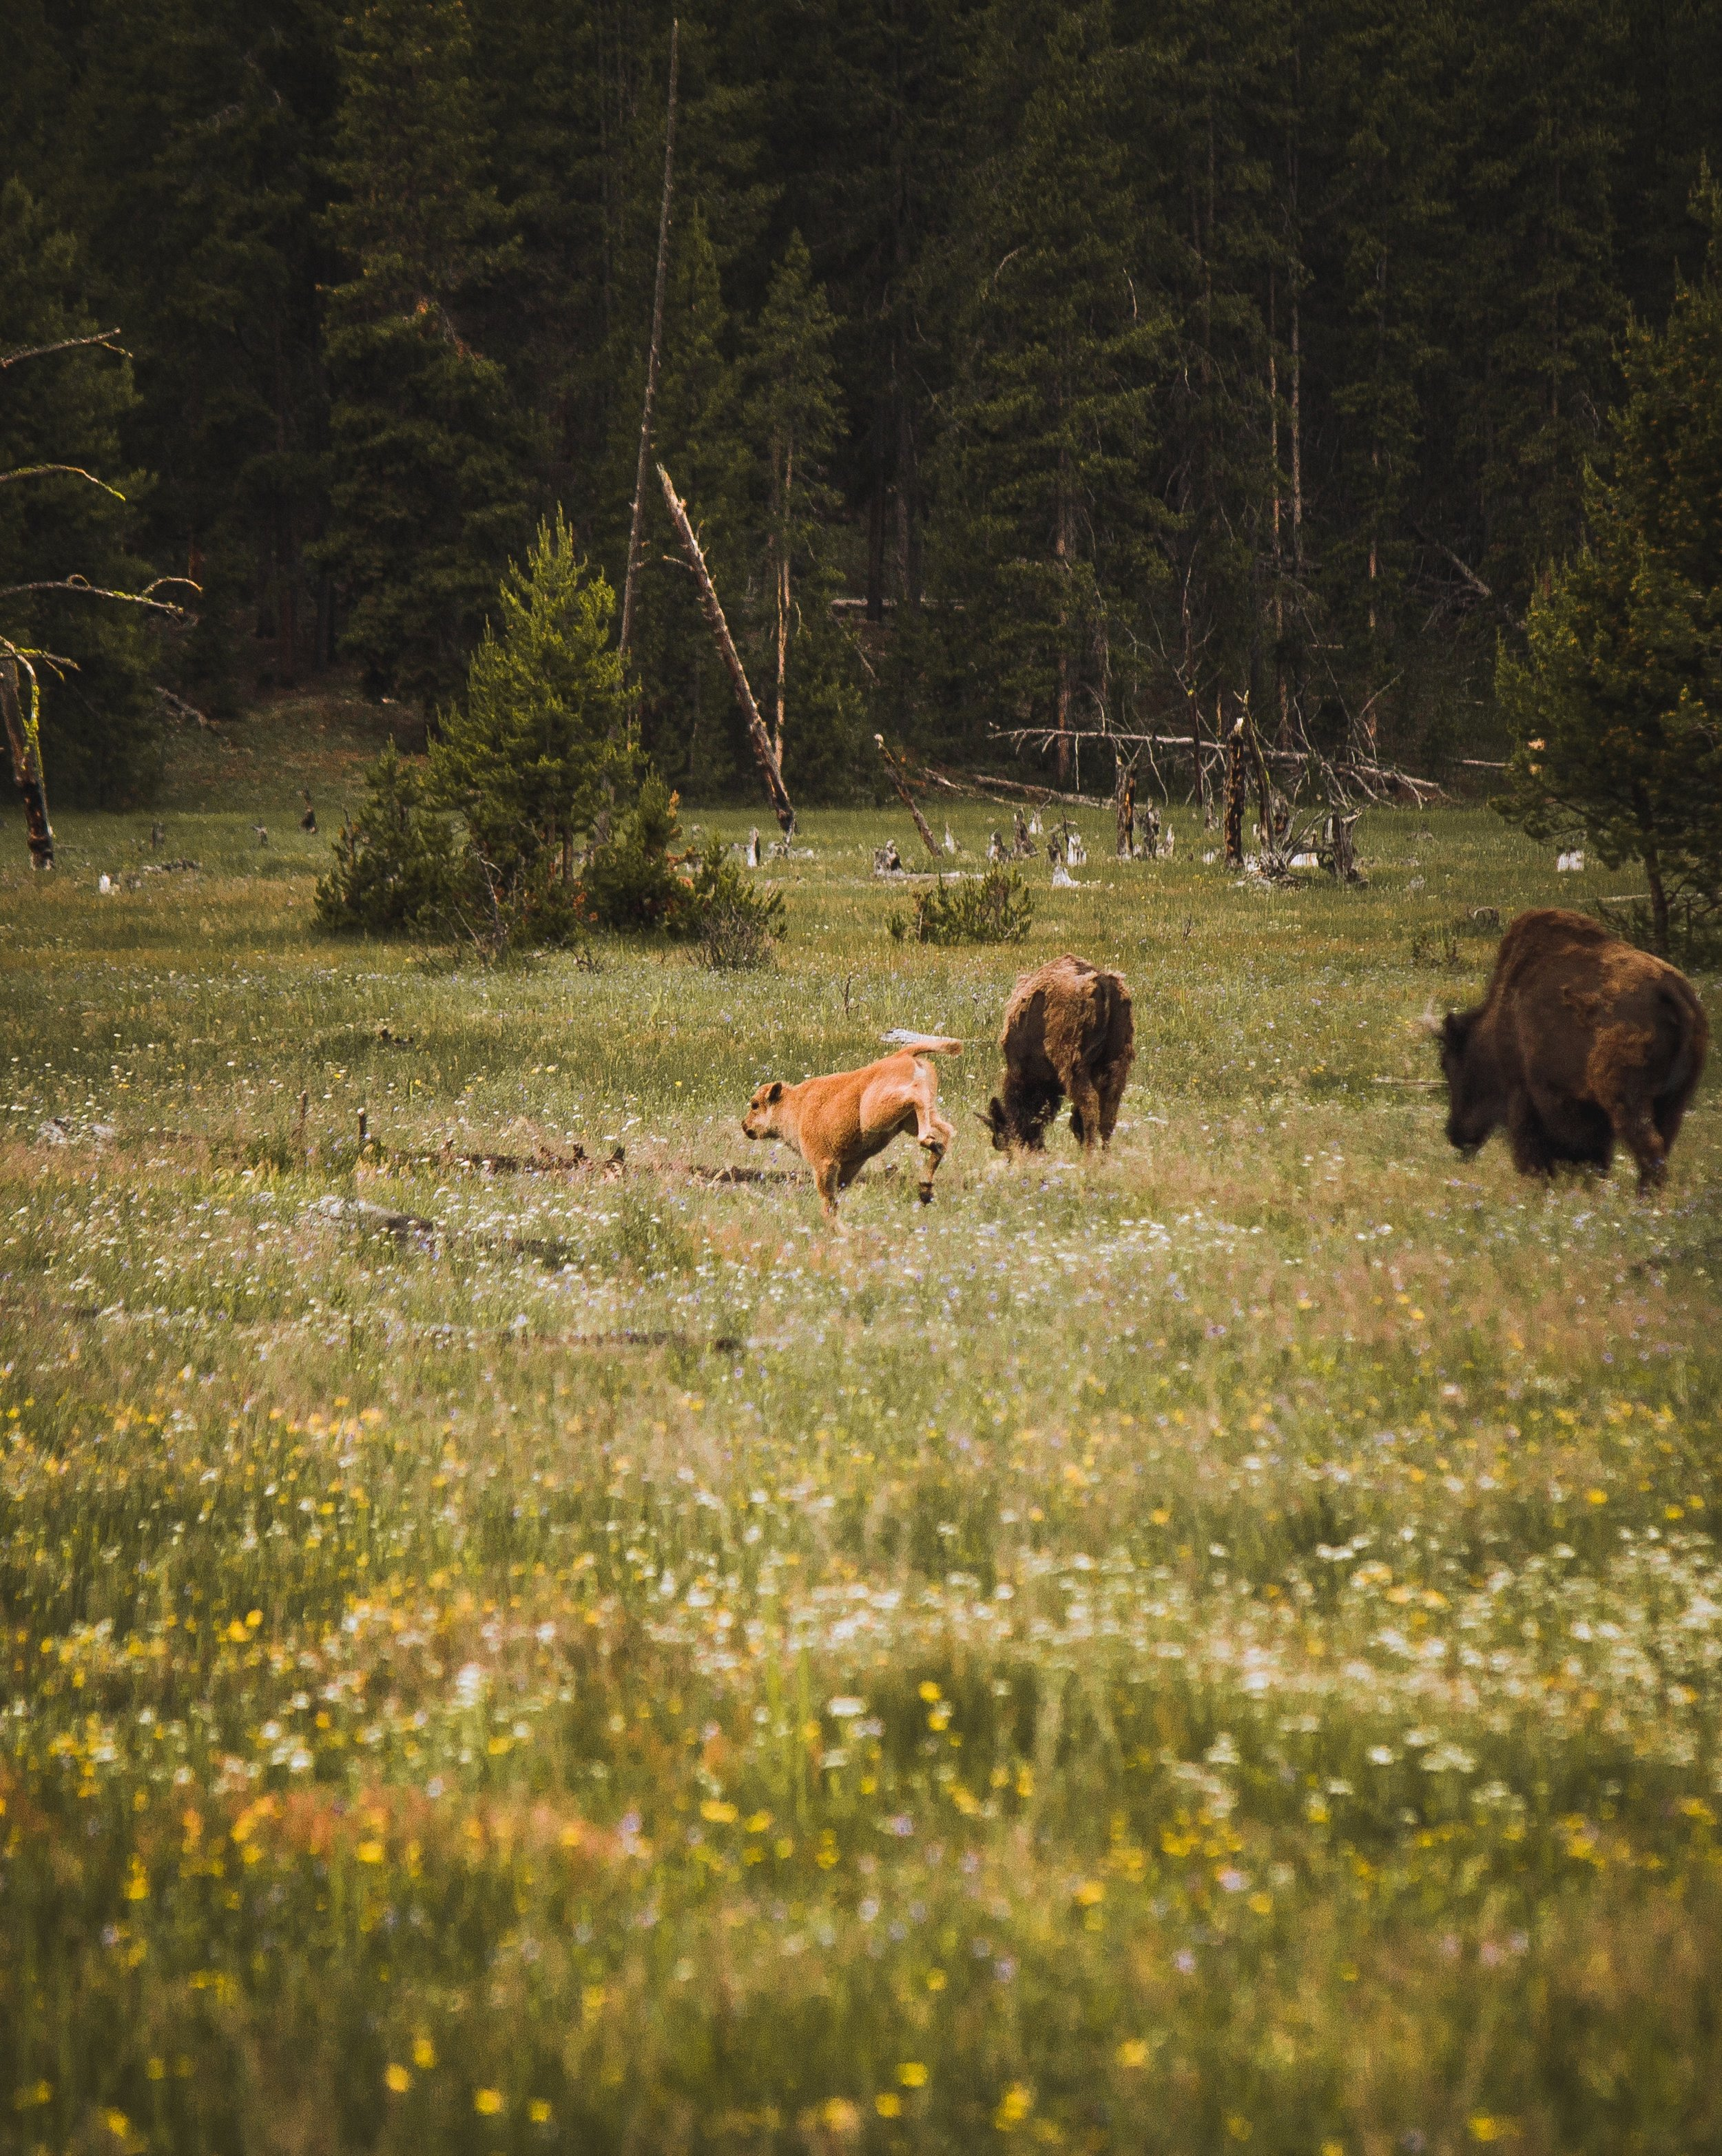 Beautiful wildlife photo: one of america's top national parks - yellowstone.